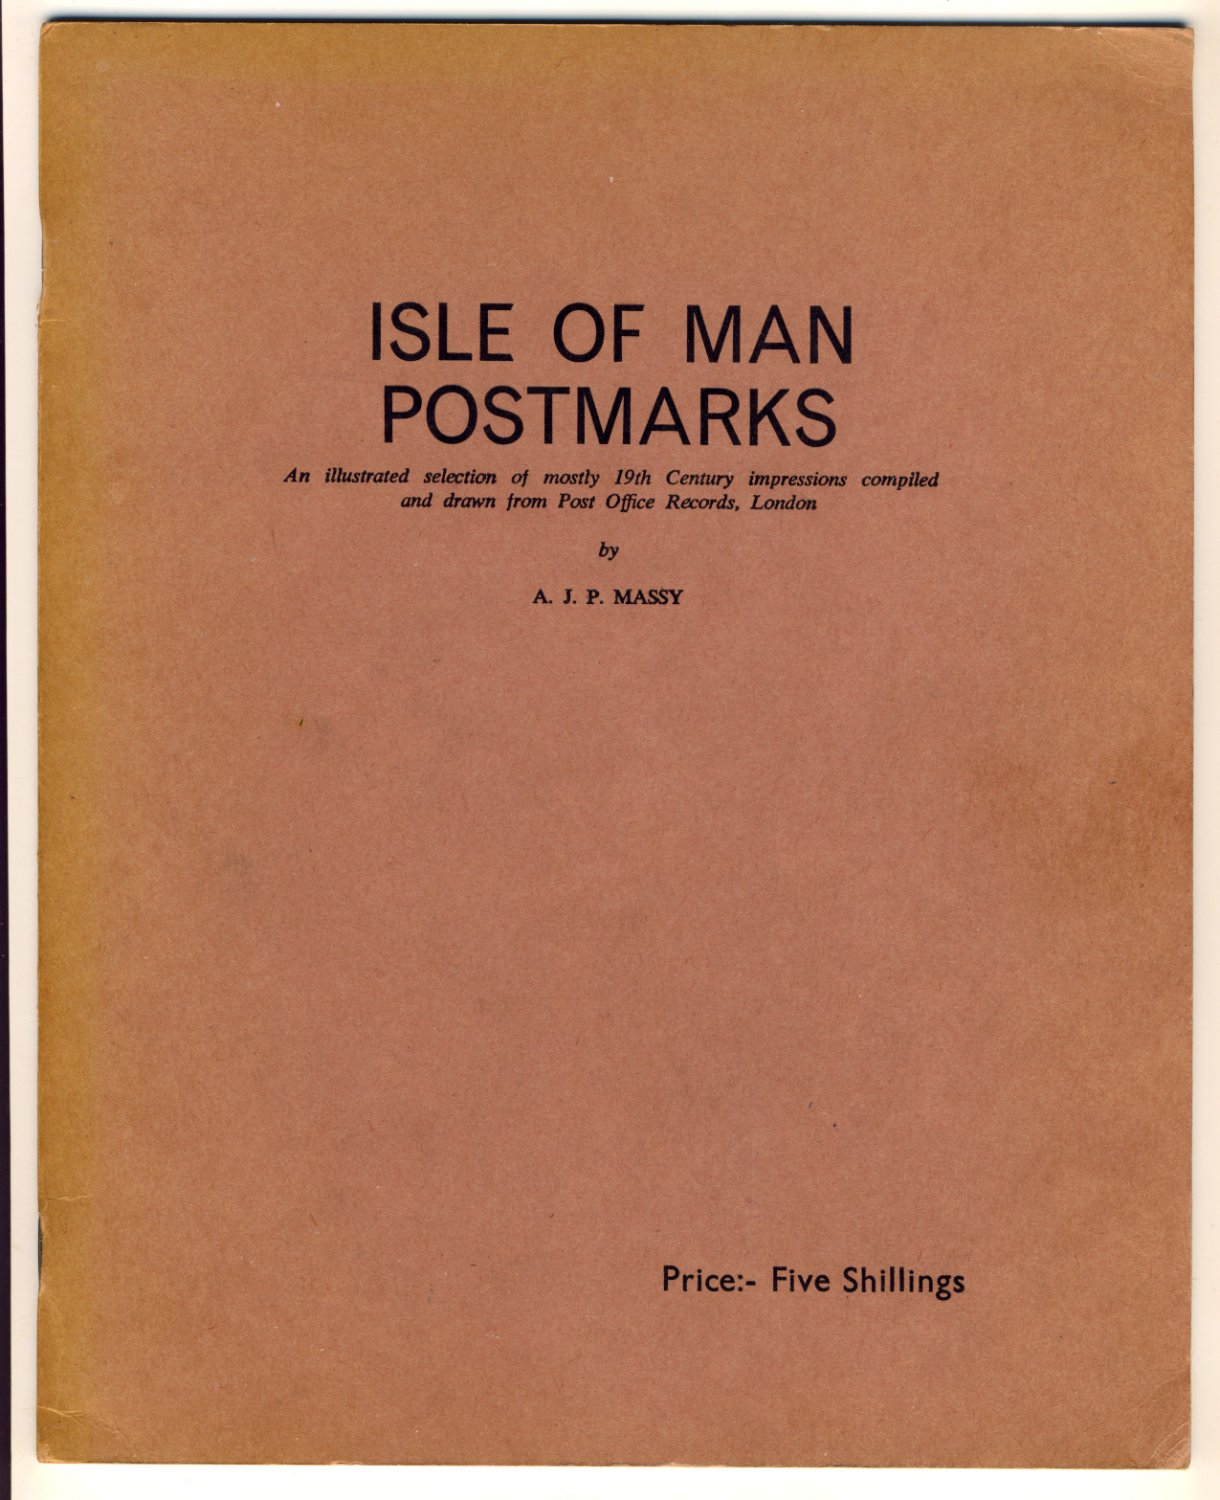 Isle of Man Postmarks by A J P Massy - Many Old Postal Markings Illustrated from Post office Records